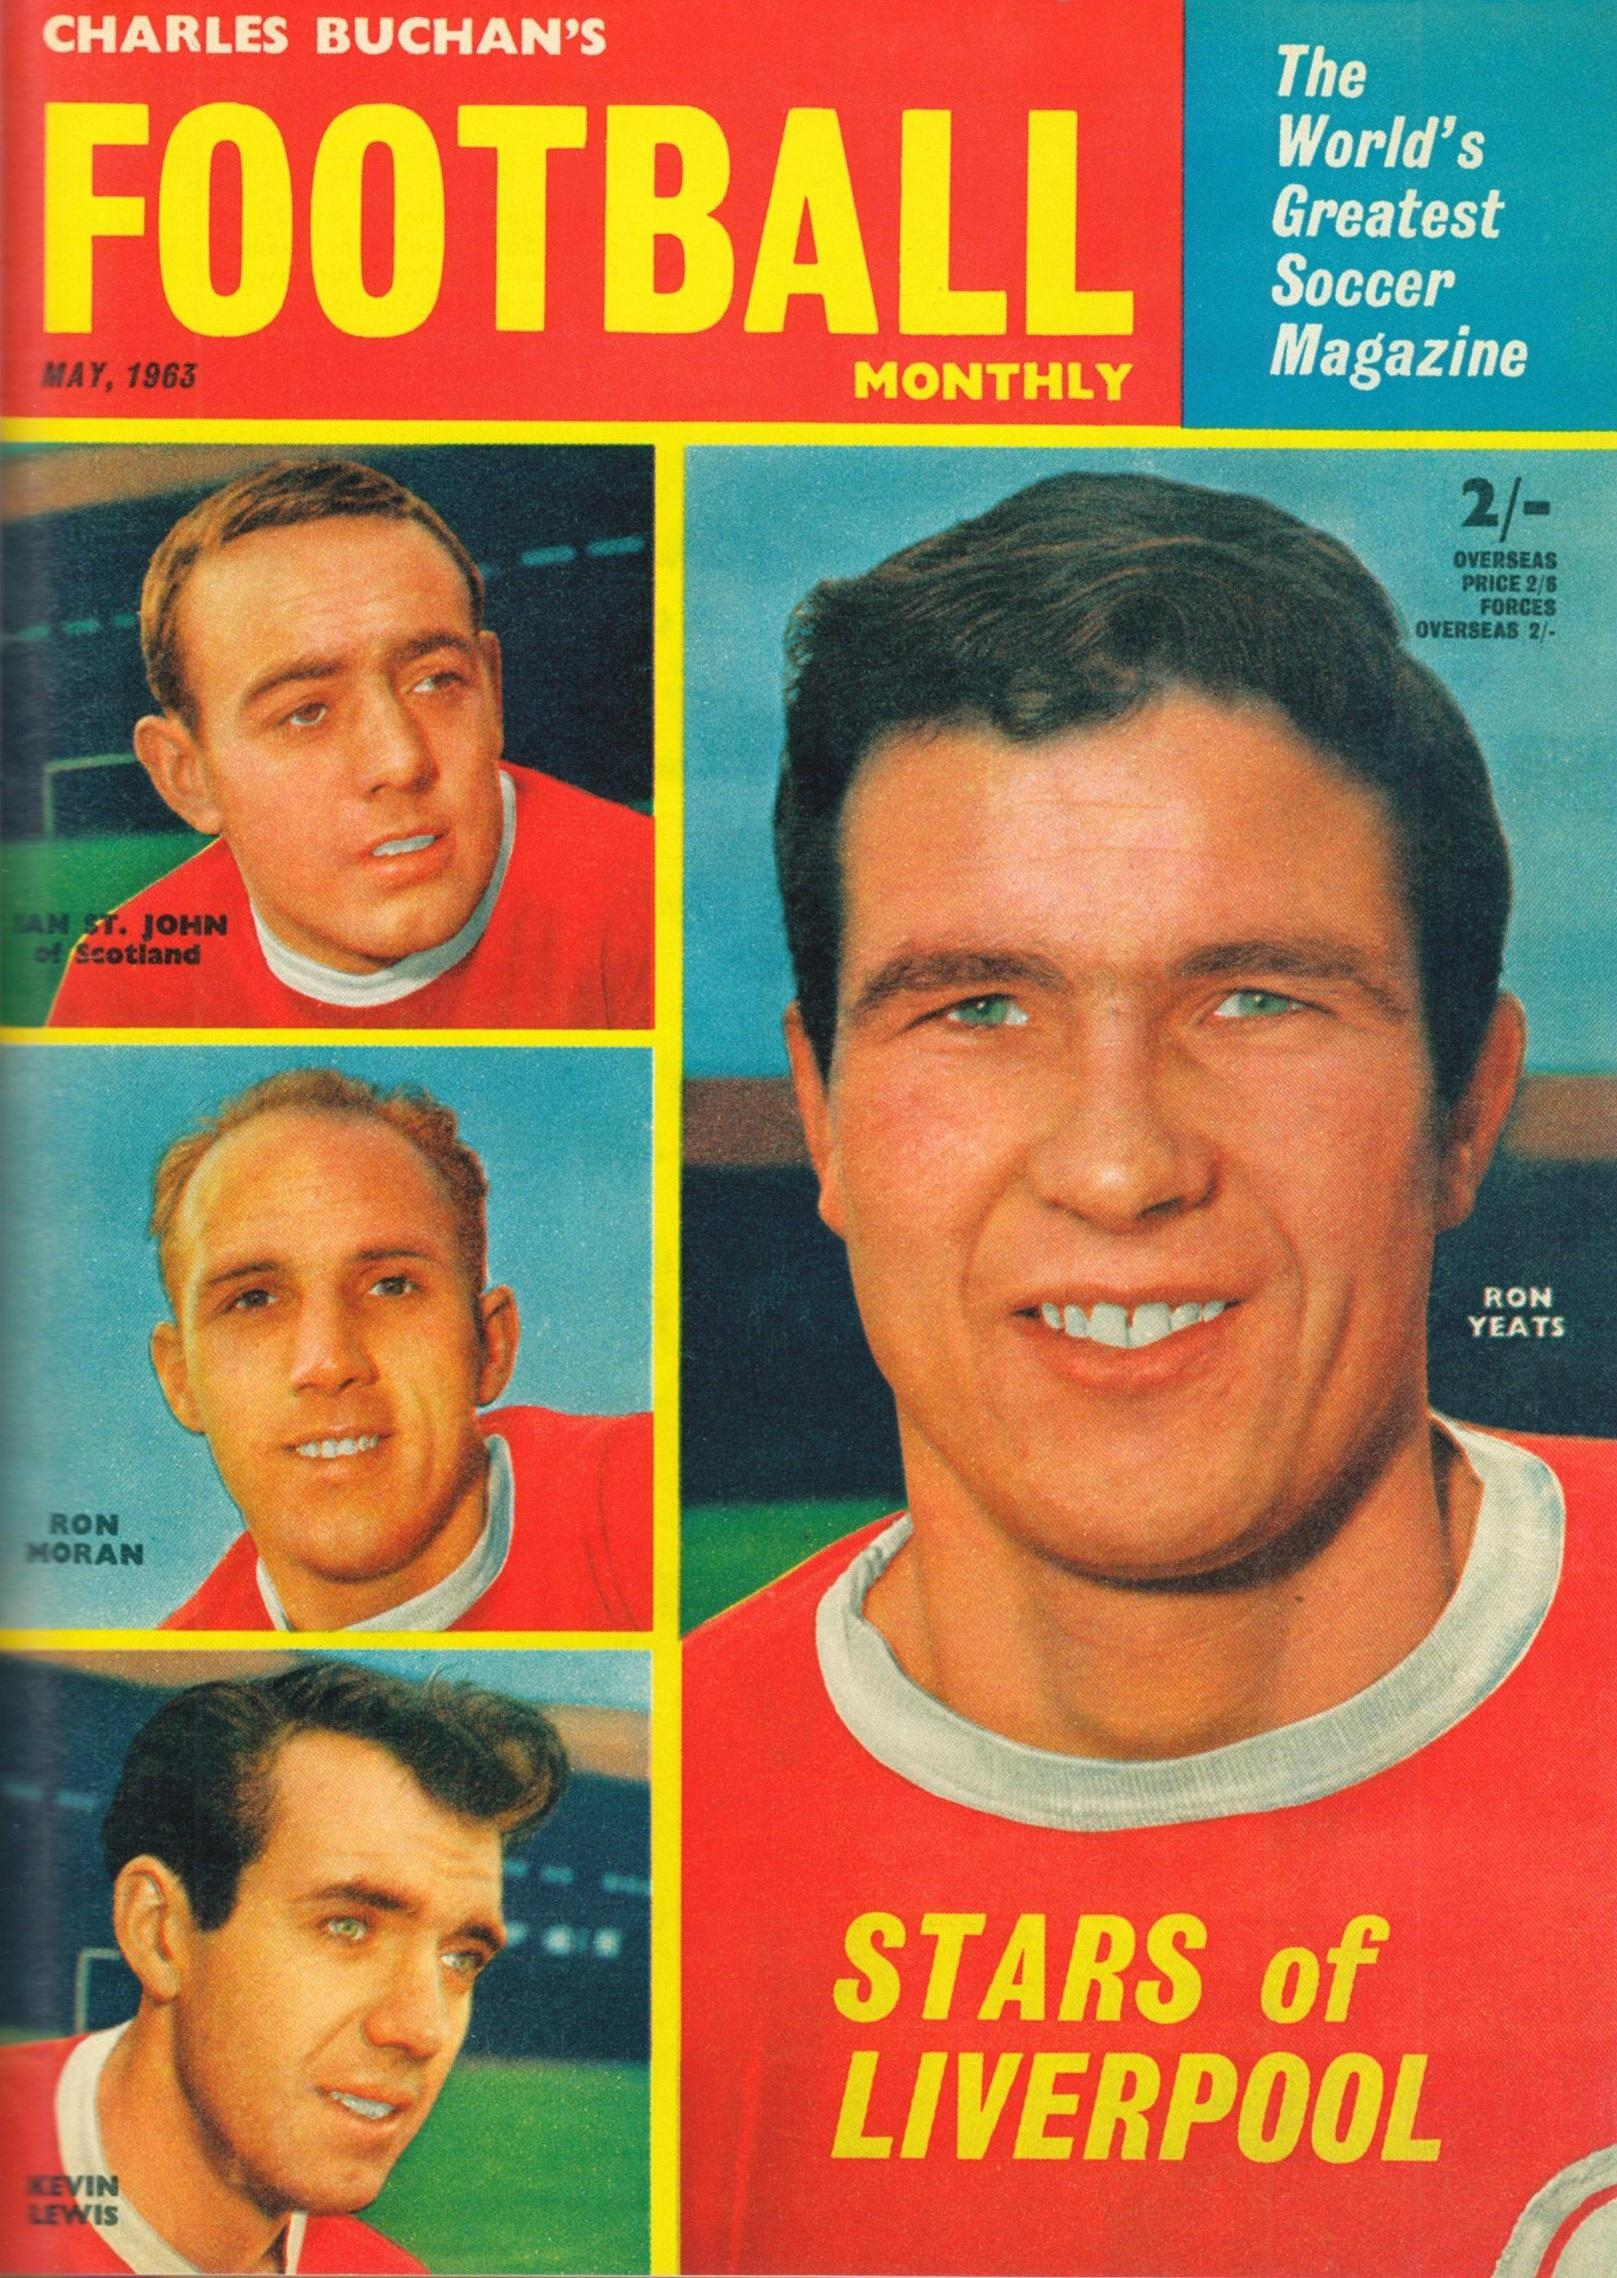 Stars of Liverpool - Cover of Football Monthly May 1963